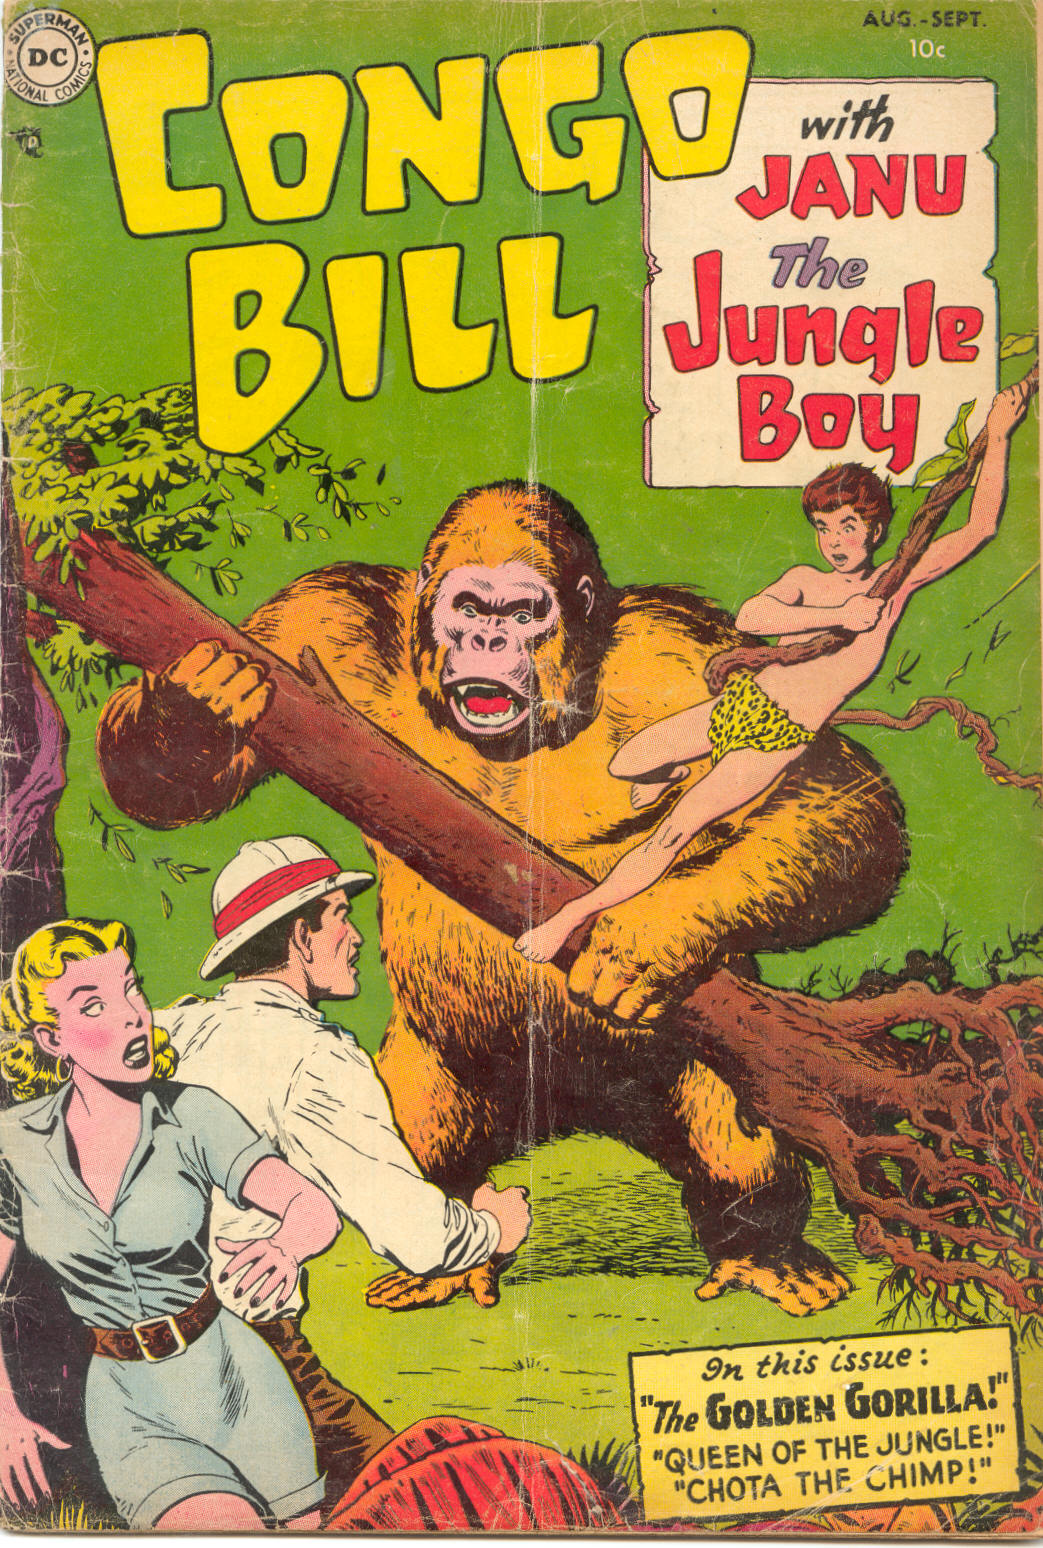 Congo Bill (1954) #1, cover by Nick Cardy.